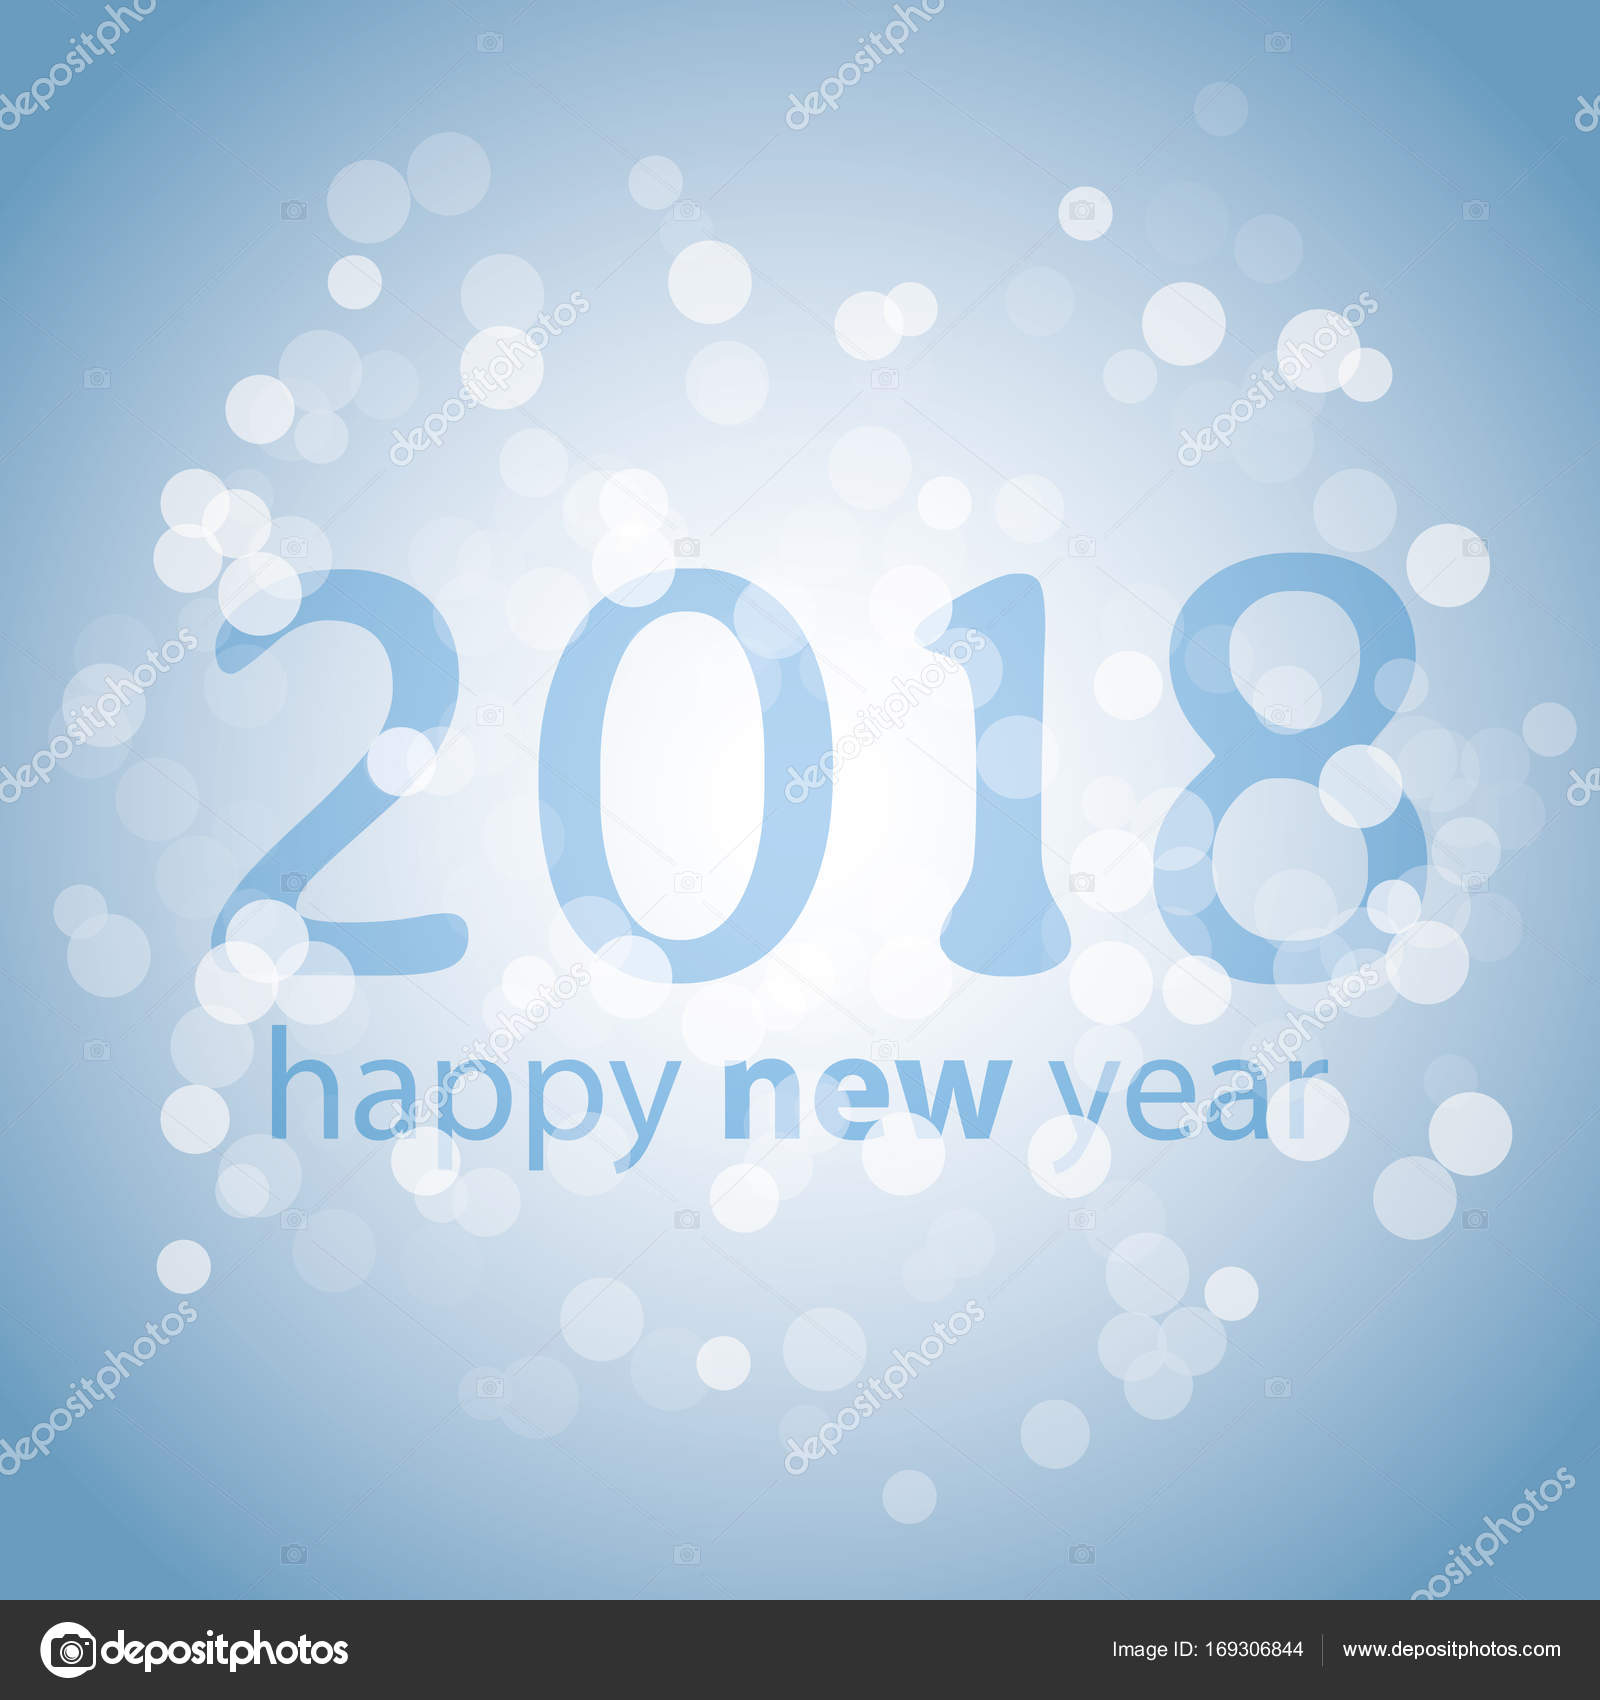 best wishes abstract colorful modern style new year card cover or background design template with numerals illustration in freely scalable and editable